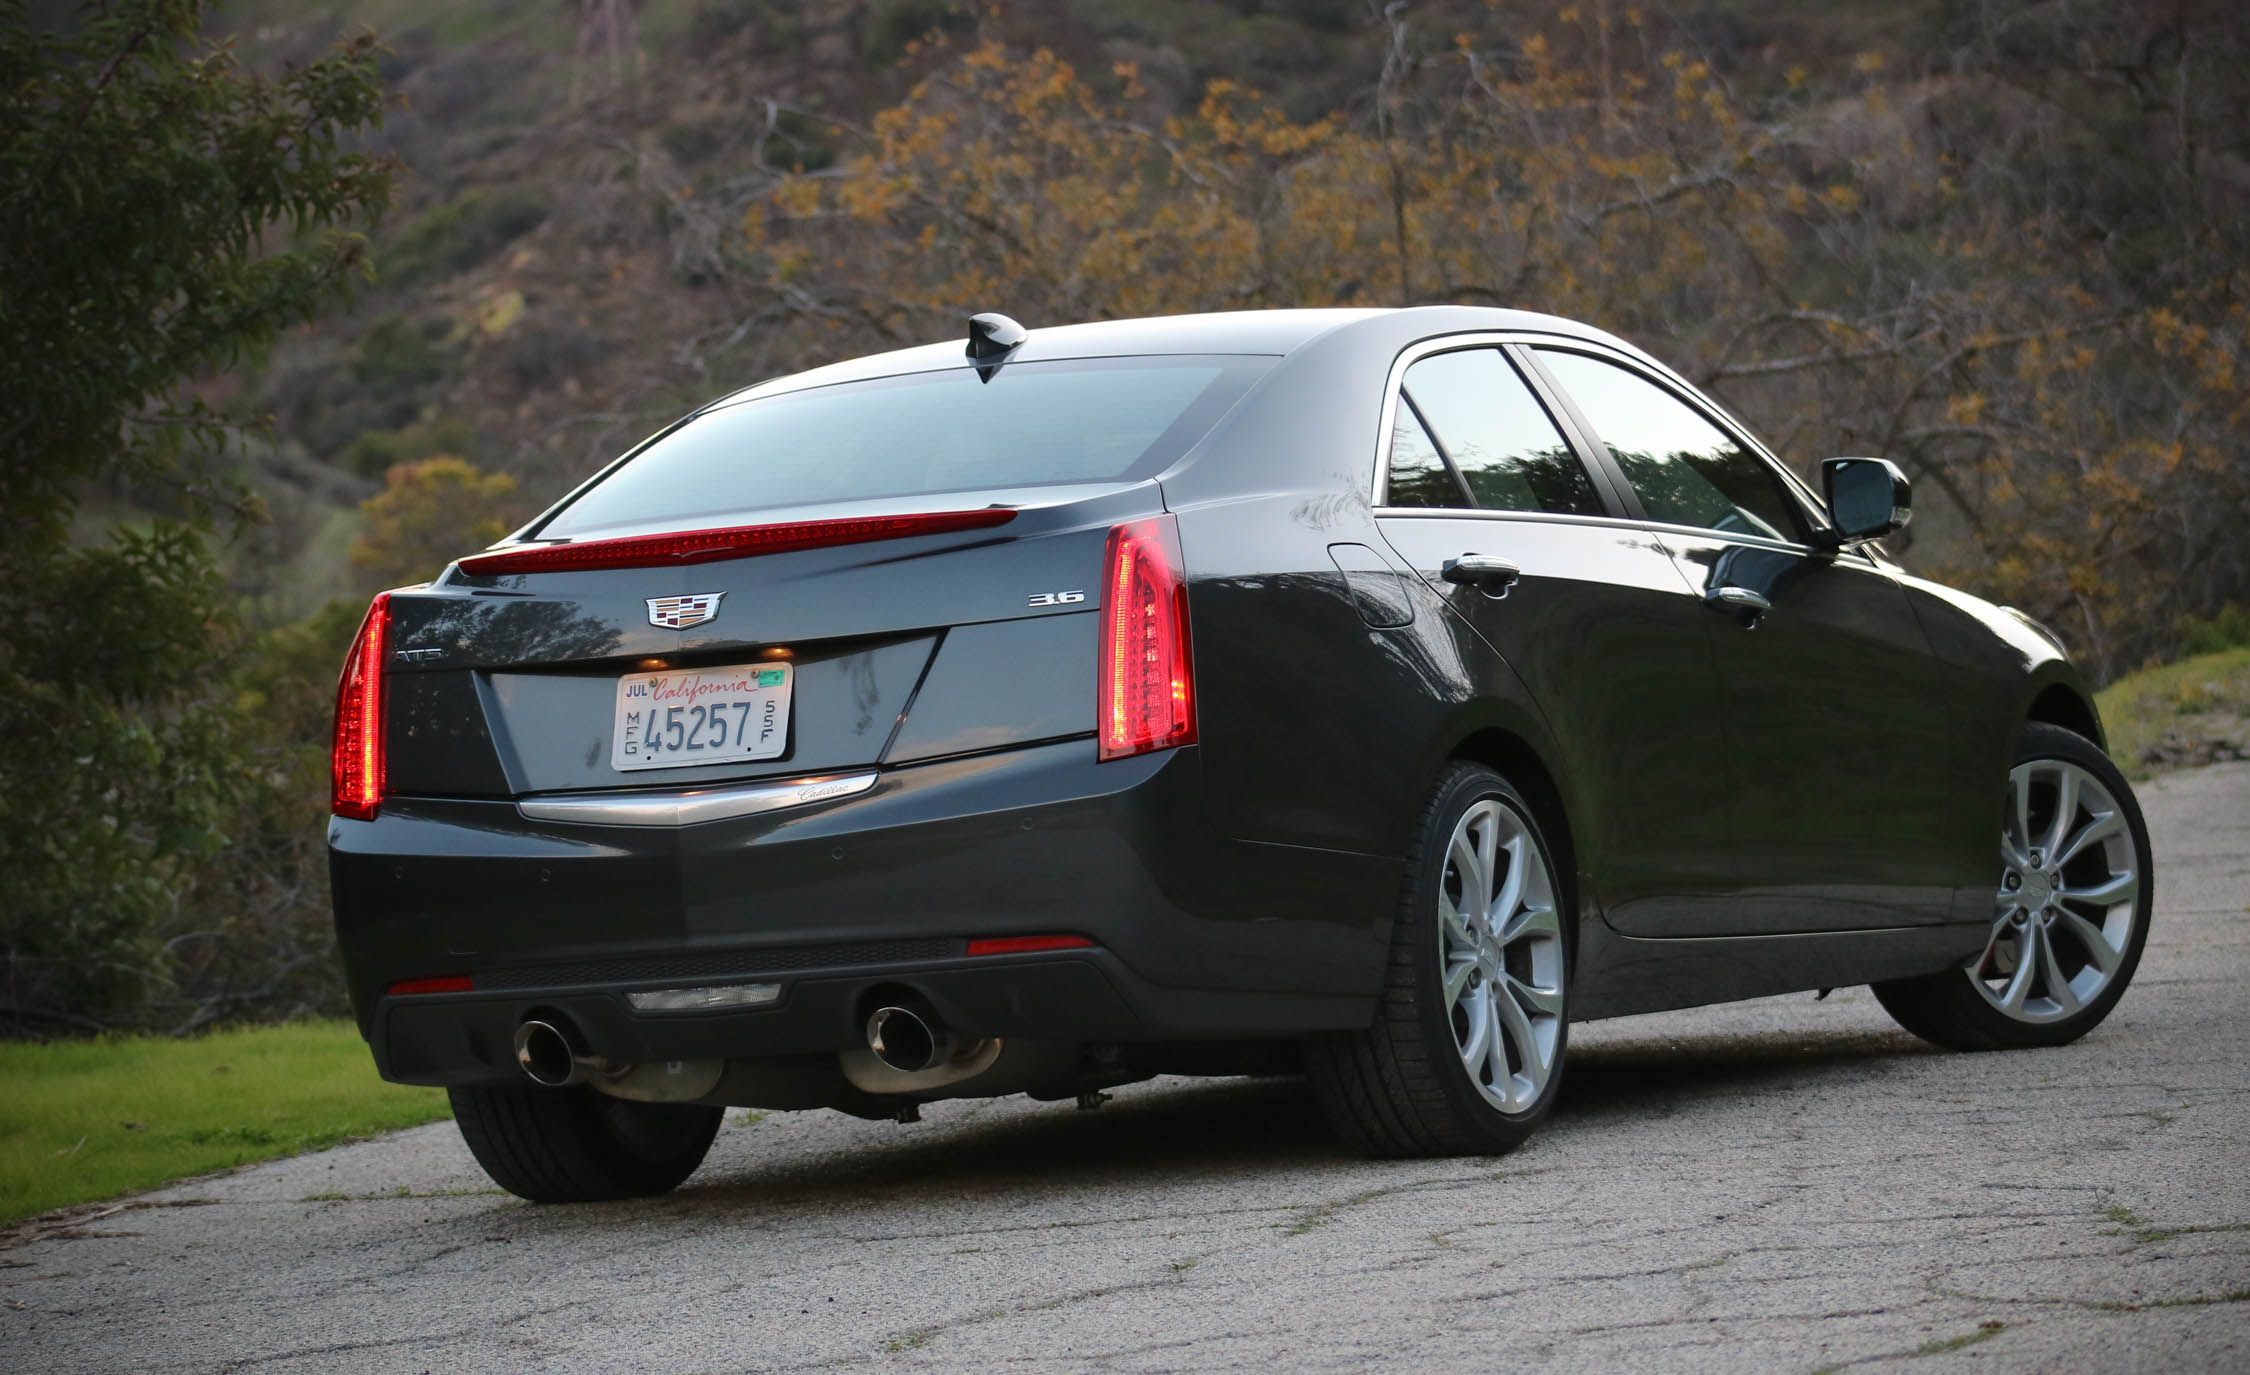 gm parts coupe sedan ats performance authority chrome and black announces cadillac blog announced package